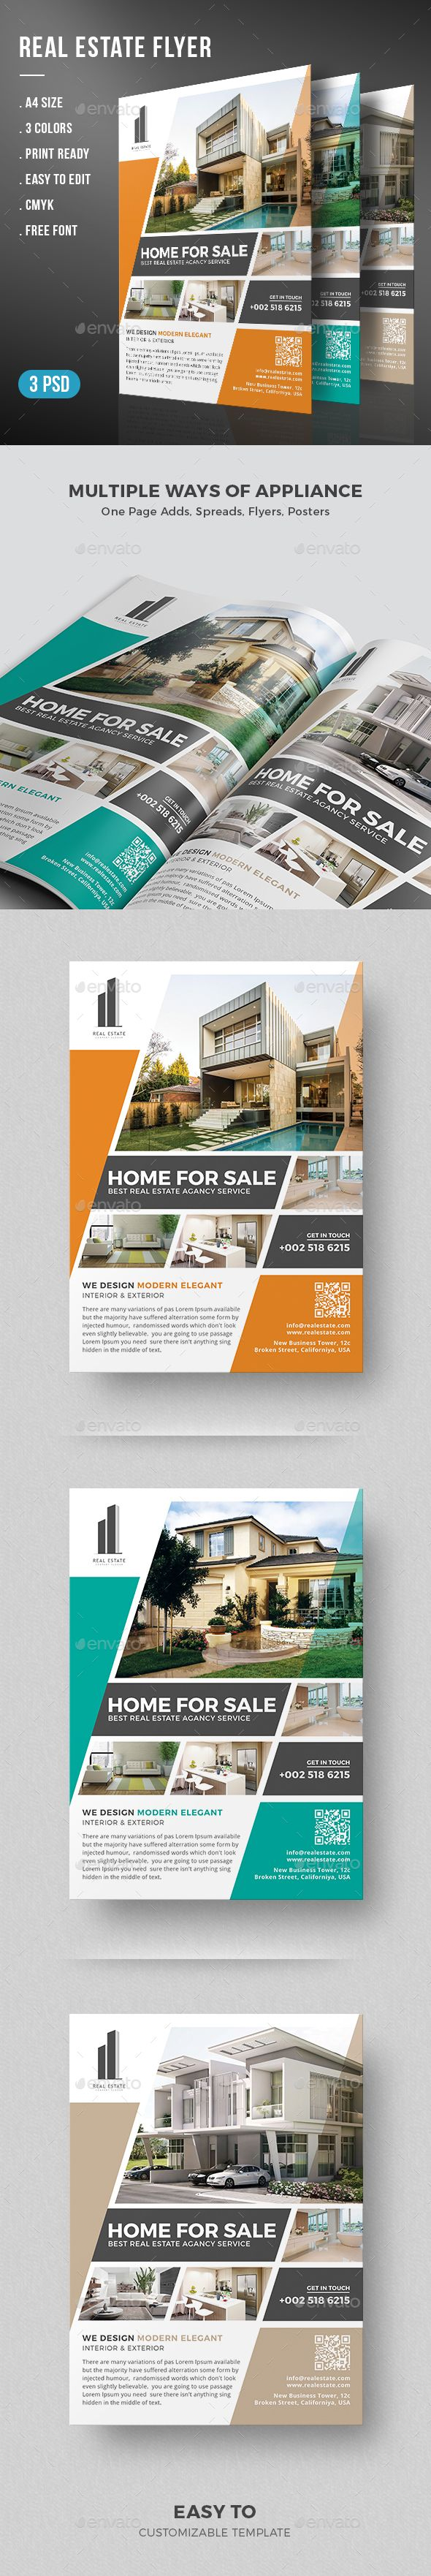 #Real Estate Flyer - Corporate Flyers Download  here: https://graphicriver.net/item/real-estate-flyer/15279388?ref=Classicdesignp